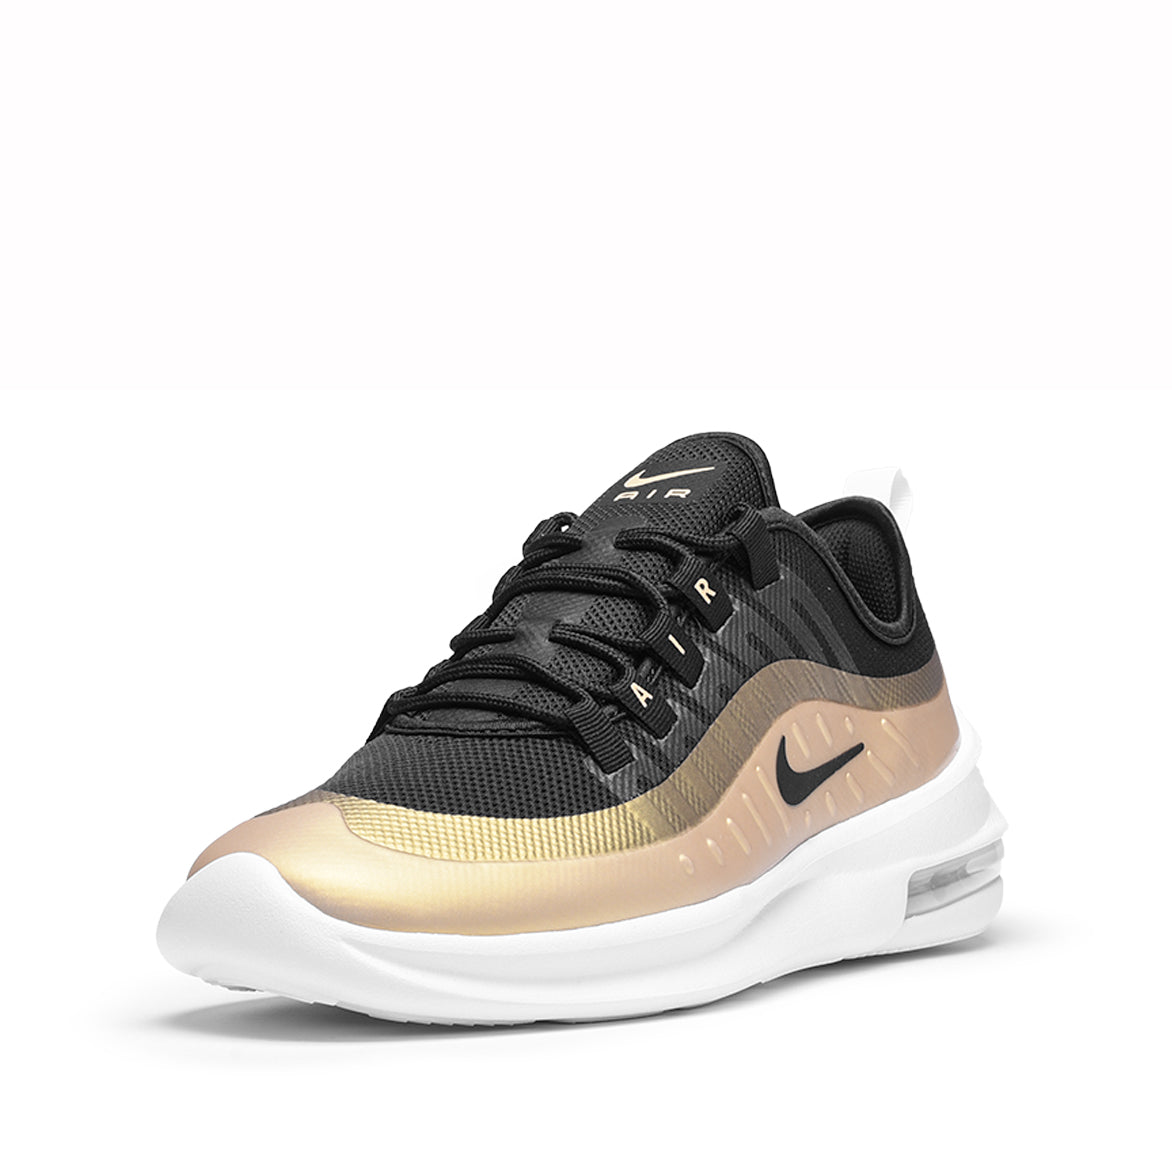 AIR MAX AXIS - BLACK / METALLIC GOLD STAR